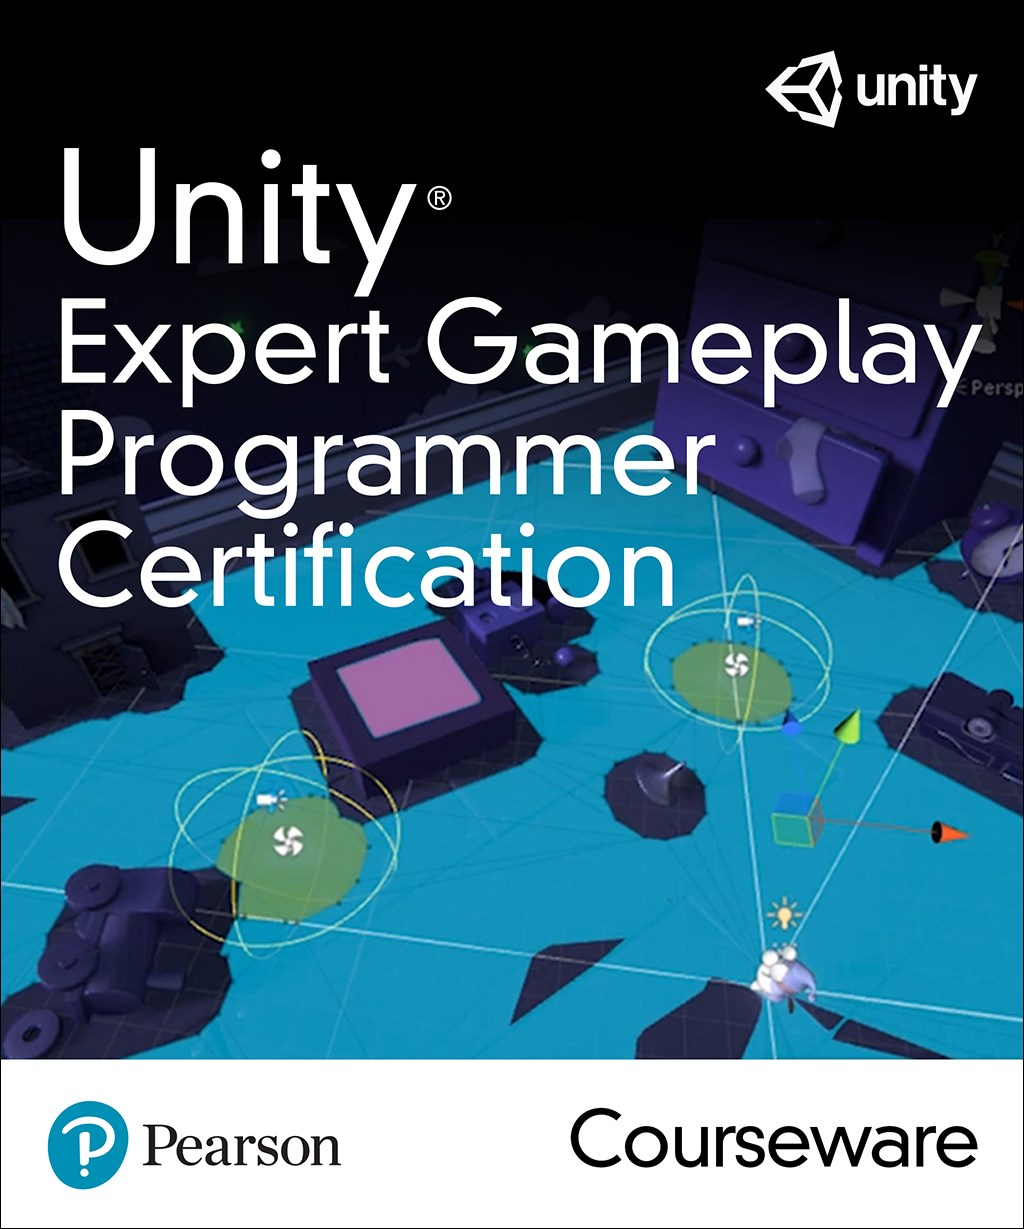 Unity Expert Gameplay Programmer Certification Courseware (Video Training)